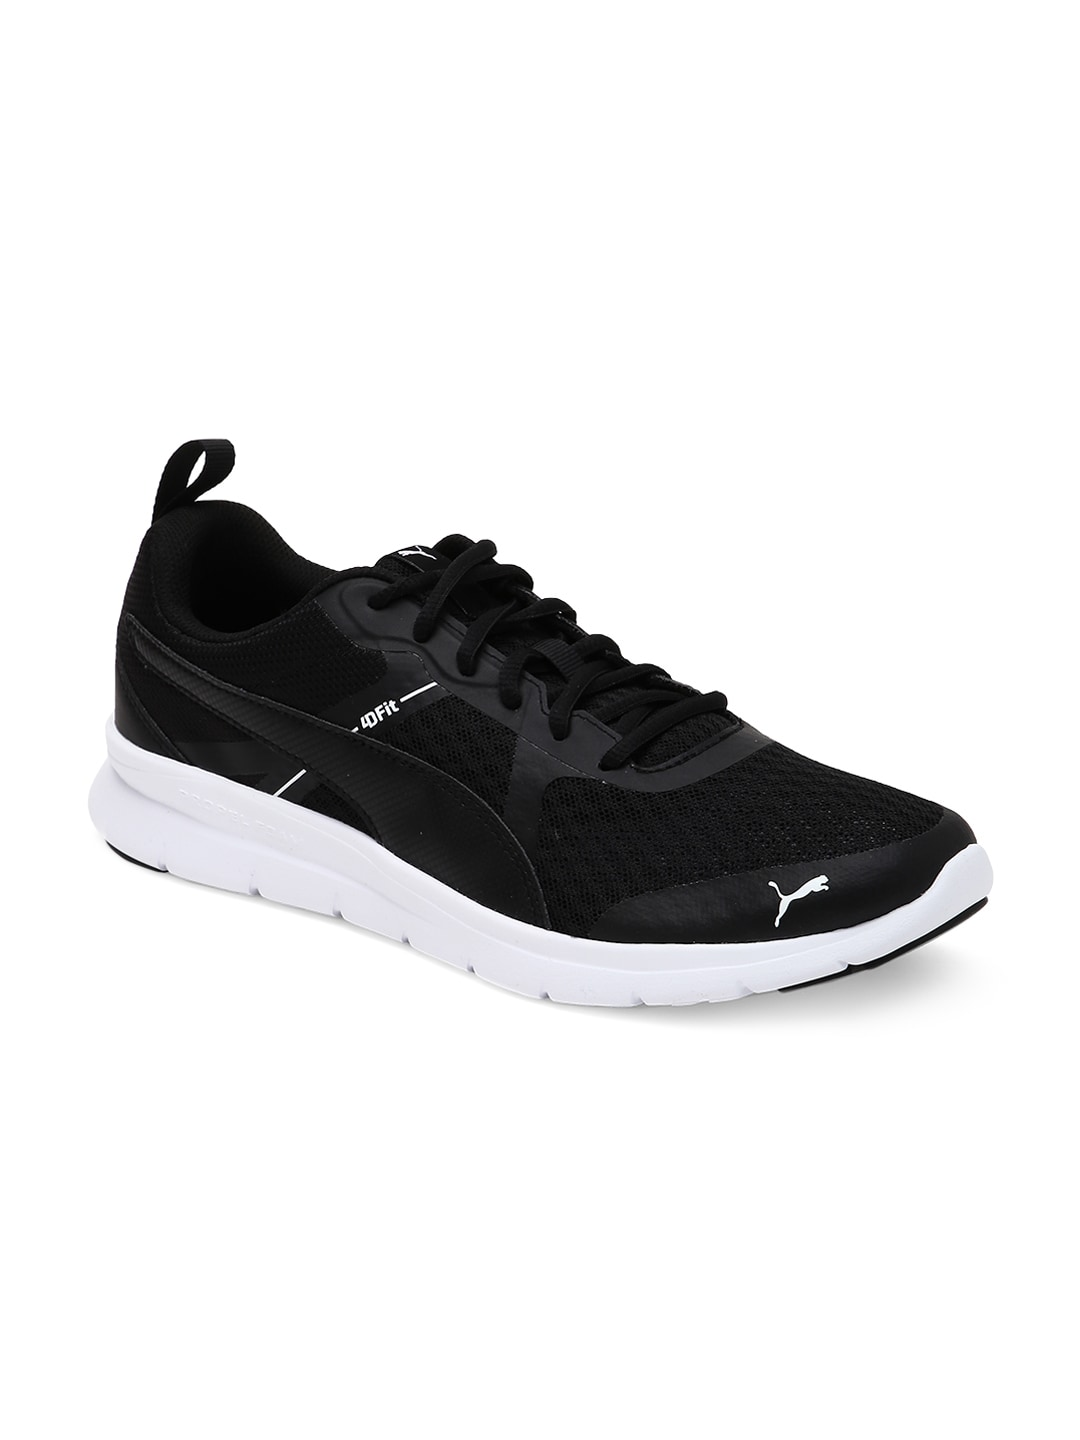 b9e50da179fa Puma® - Buy Orignal Puma products in India